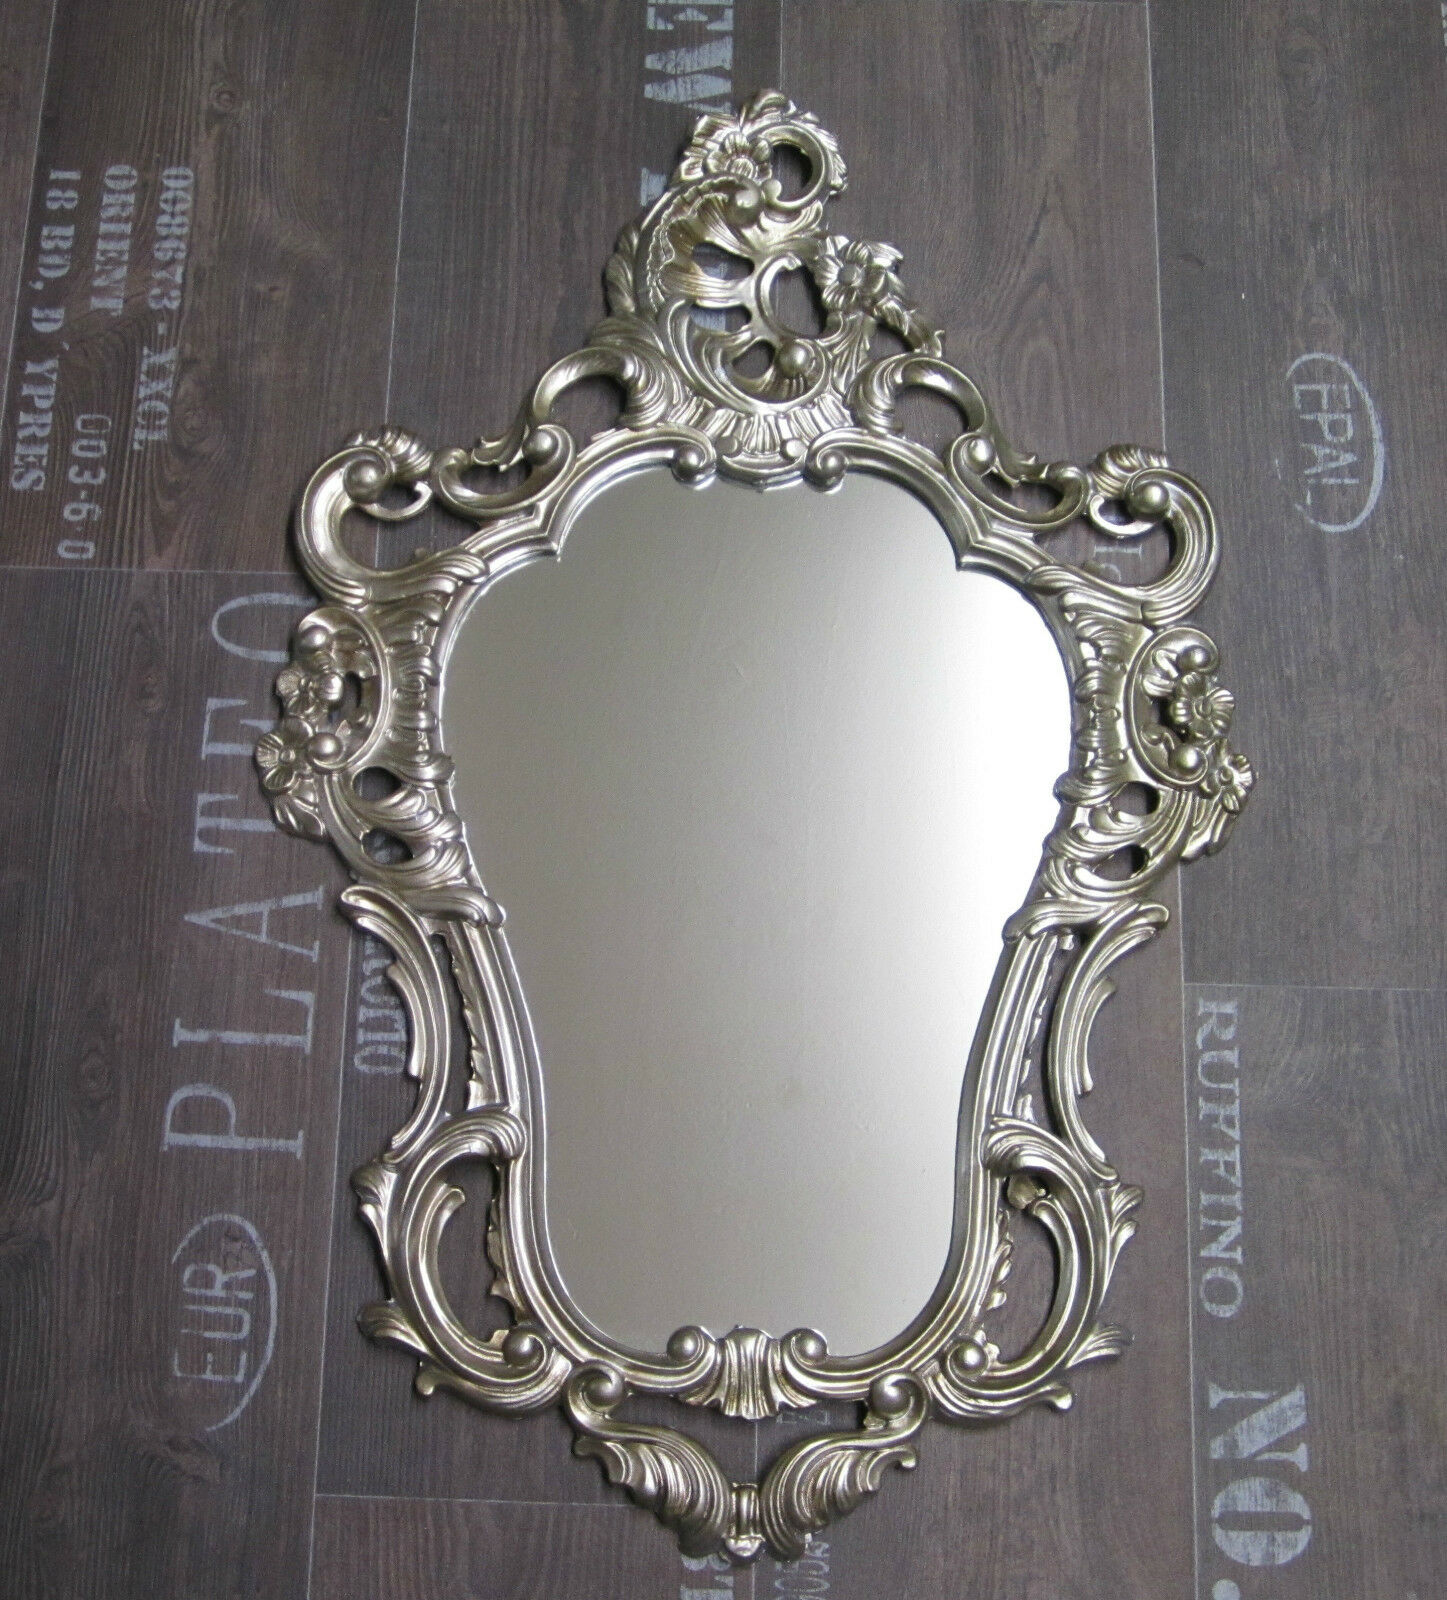 antique baroque wall mirror gilt white black silver ornate rococo 118. Black Bedroom Furniture Sets. Home Design Ideas